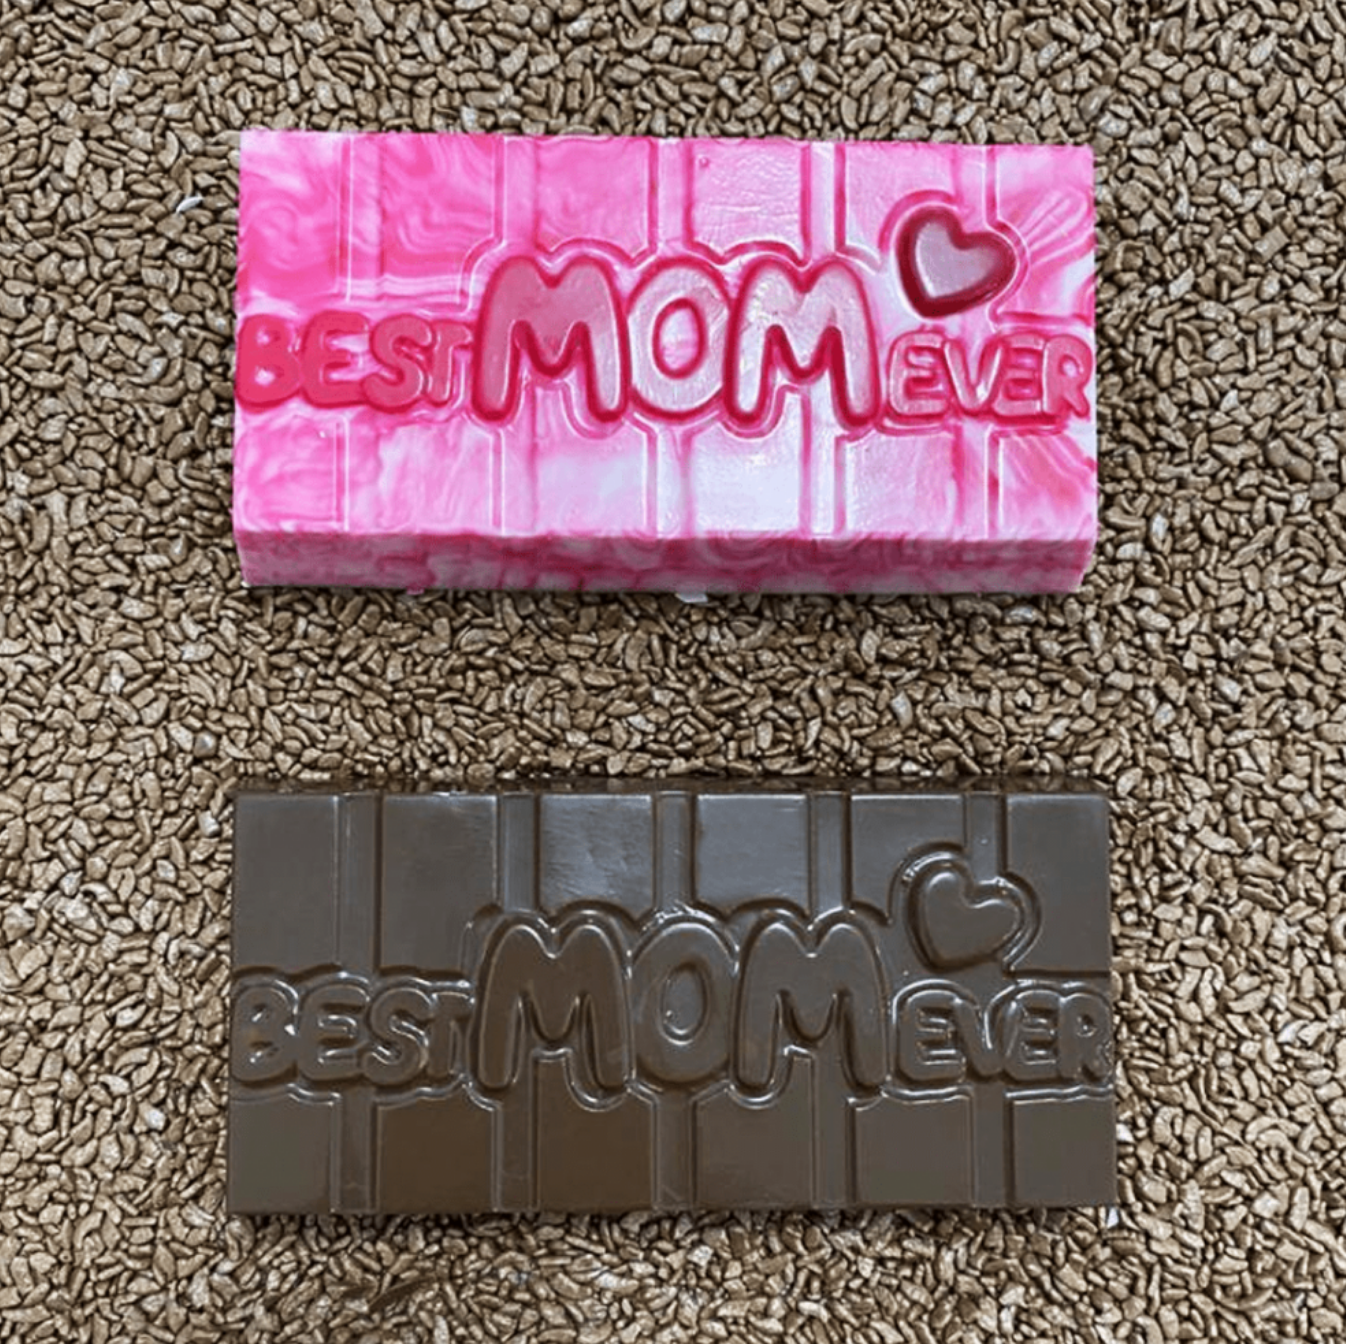 Best Mom Ever Tablet - 3 Part Mold - PRE ORDER - Arriving end of January